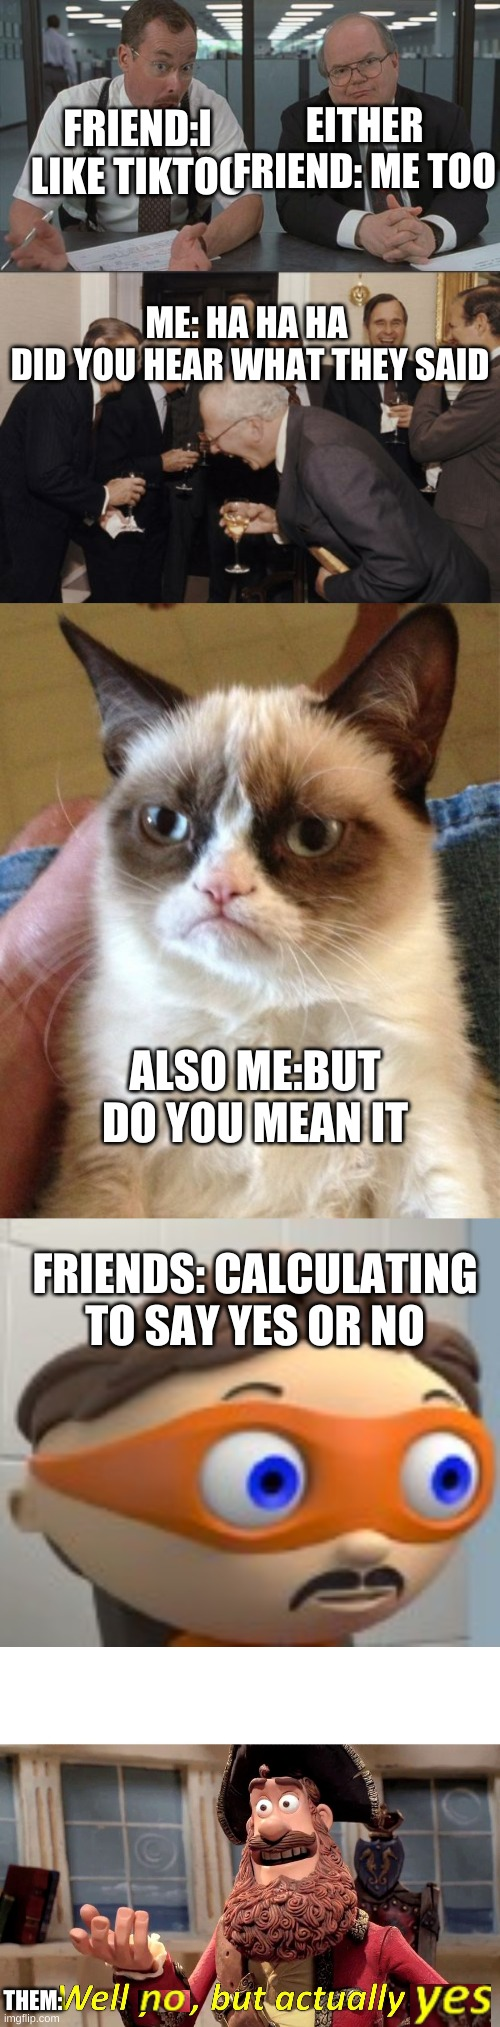 EITHER FRIEND: ME TOO; FRIEND:I LIKE TIKTOC; ME: HA HA HA  DID YOU HEAR WHAT THEY SAID; ALSO ME:BUT DO YOU MEAN IT; FRIENDS: CALCULATING TO SAY YES OR NO; THEM: | image tagged in memes,grumpy cat,laughing men in suits,office space what do you do here,well yes but actually no,yes | made w/ Imgflip meme maker